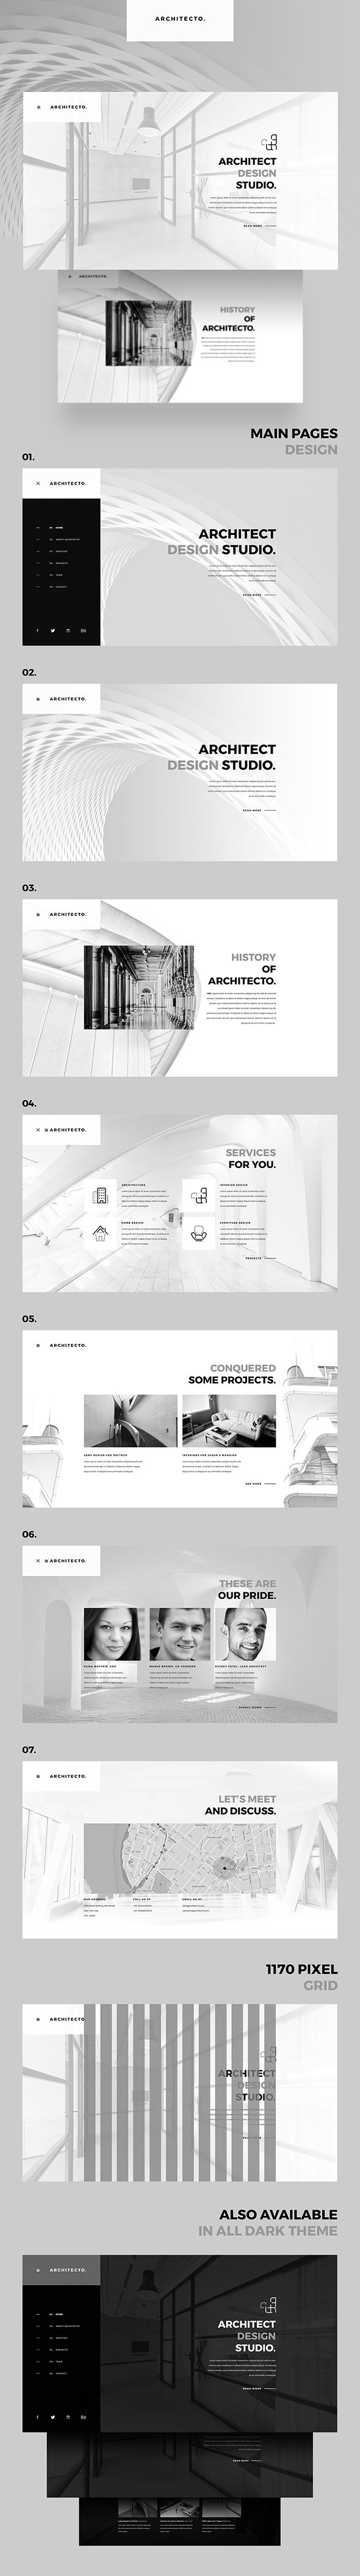 Architecto Architecture Studio PSD Template #interior #interiors #modern • Available here ➝ https://themeforest.net/item/architecto-architecture-studio-psd-template/20722084?ref=pxcr  - No site #ThemeForest encontra os melhores #Templates & #Plugins para #Wordpress. Confira em http://www.estrategiadigital.pt/themeforest-templates-wordpress/